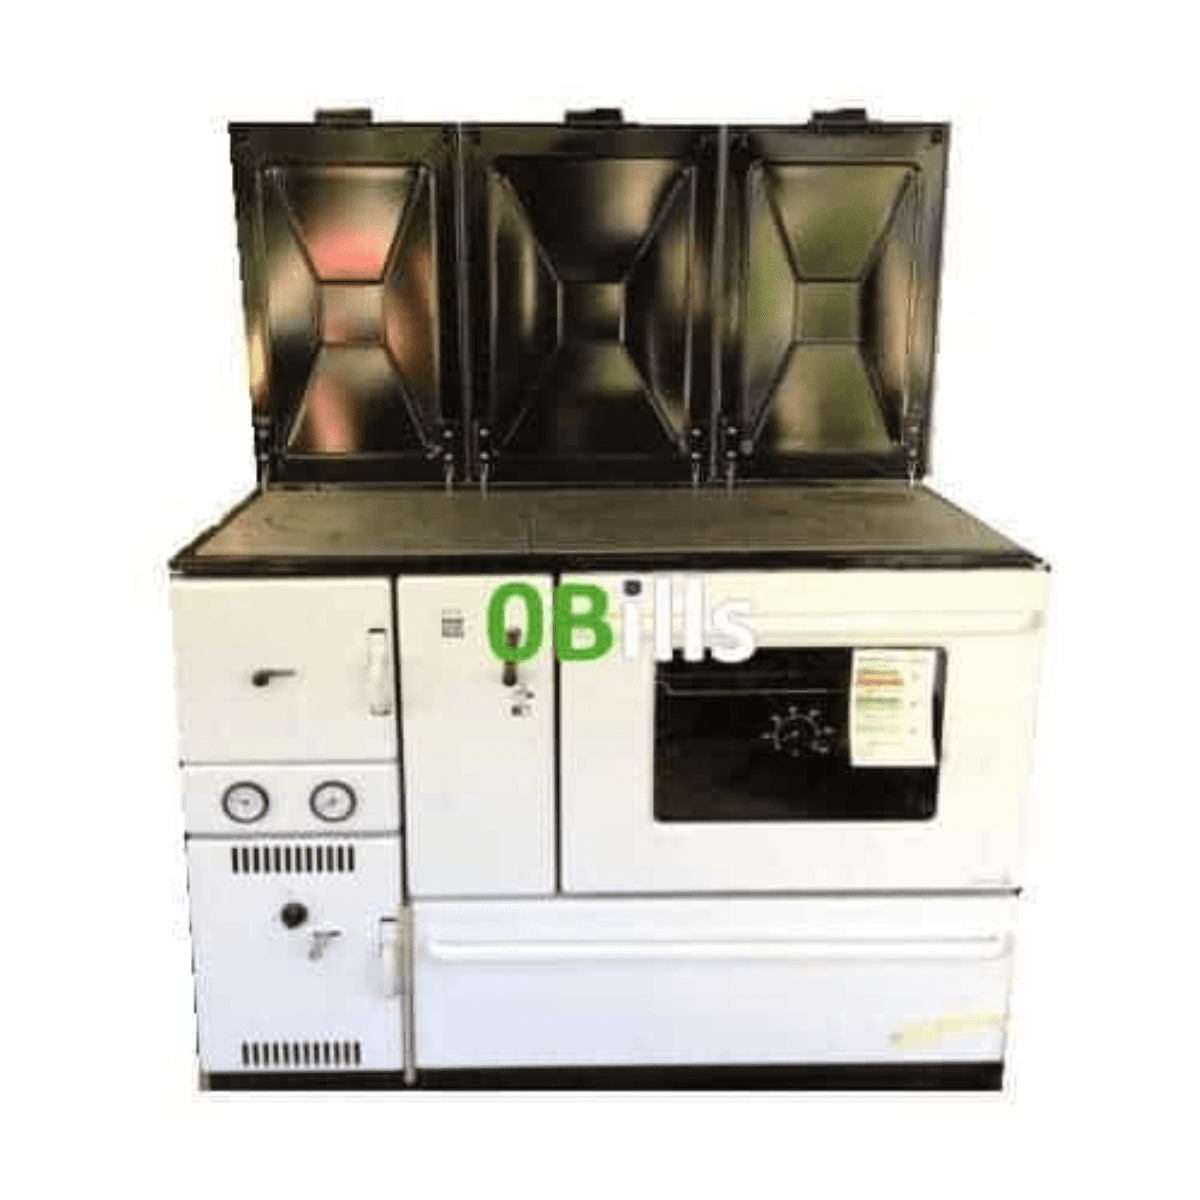 Wamsler 1100 Series (K178) central heating cooker stove WHITE (Right)